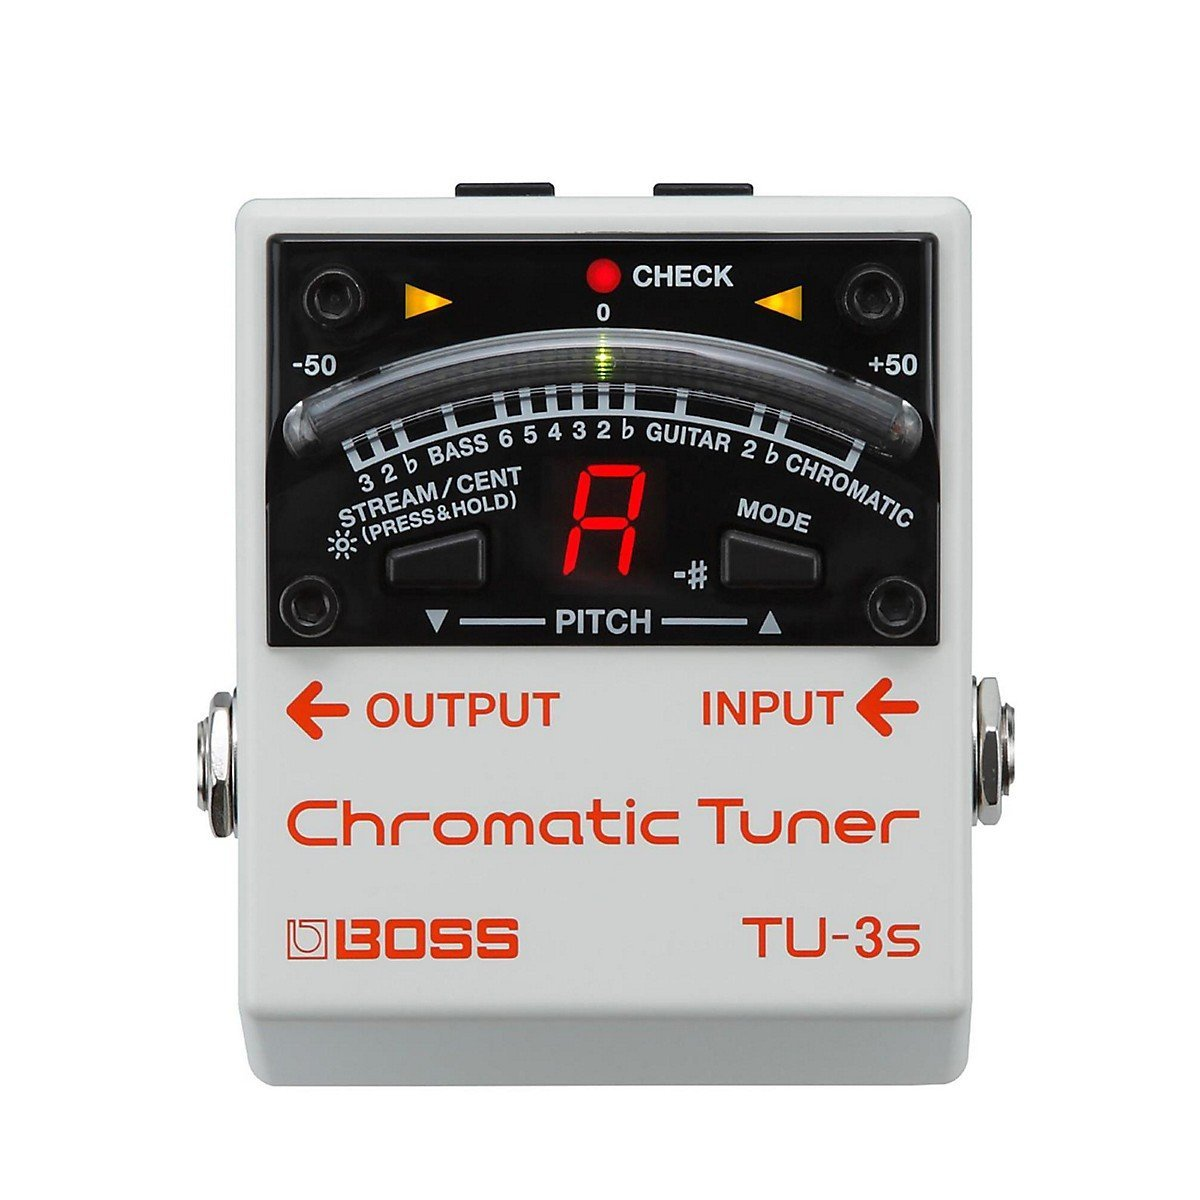 Boss TU-3S Chromatic Tuner Pedal Compact Guitar and Bass Tuner Pedal with 21-segment LED Meter, Drop Tuning Support гитарный тюнер boss tu 3w